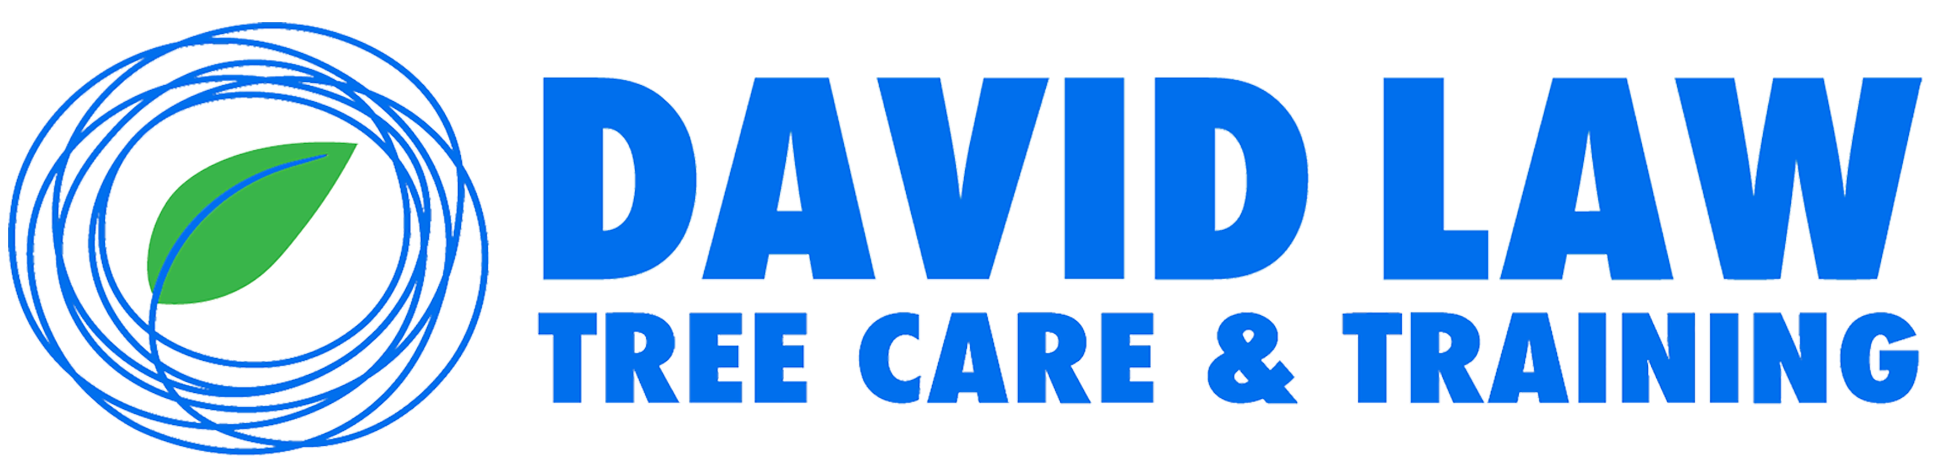 David Law Tree Care & Training